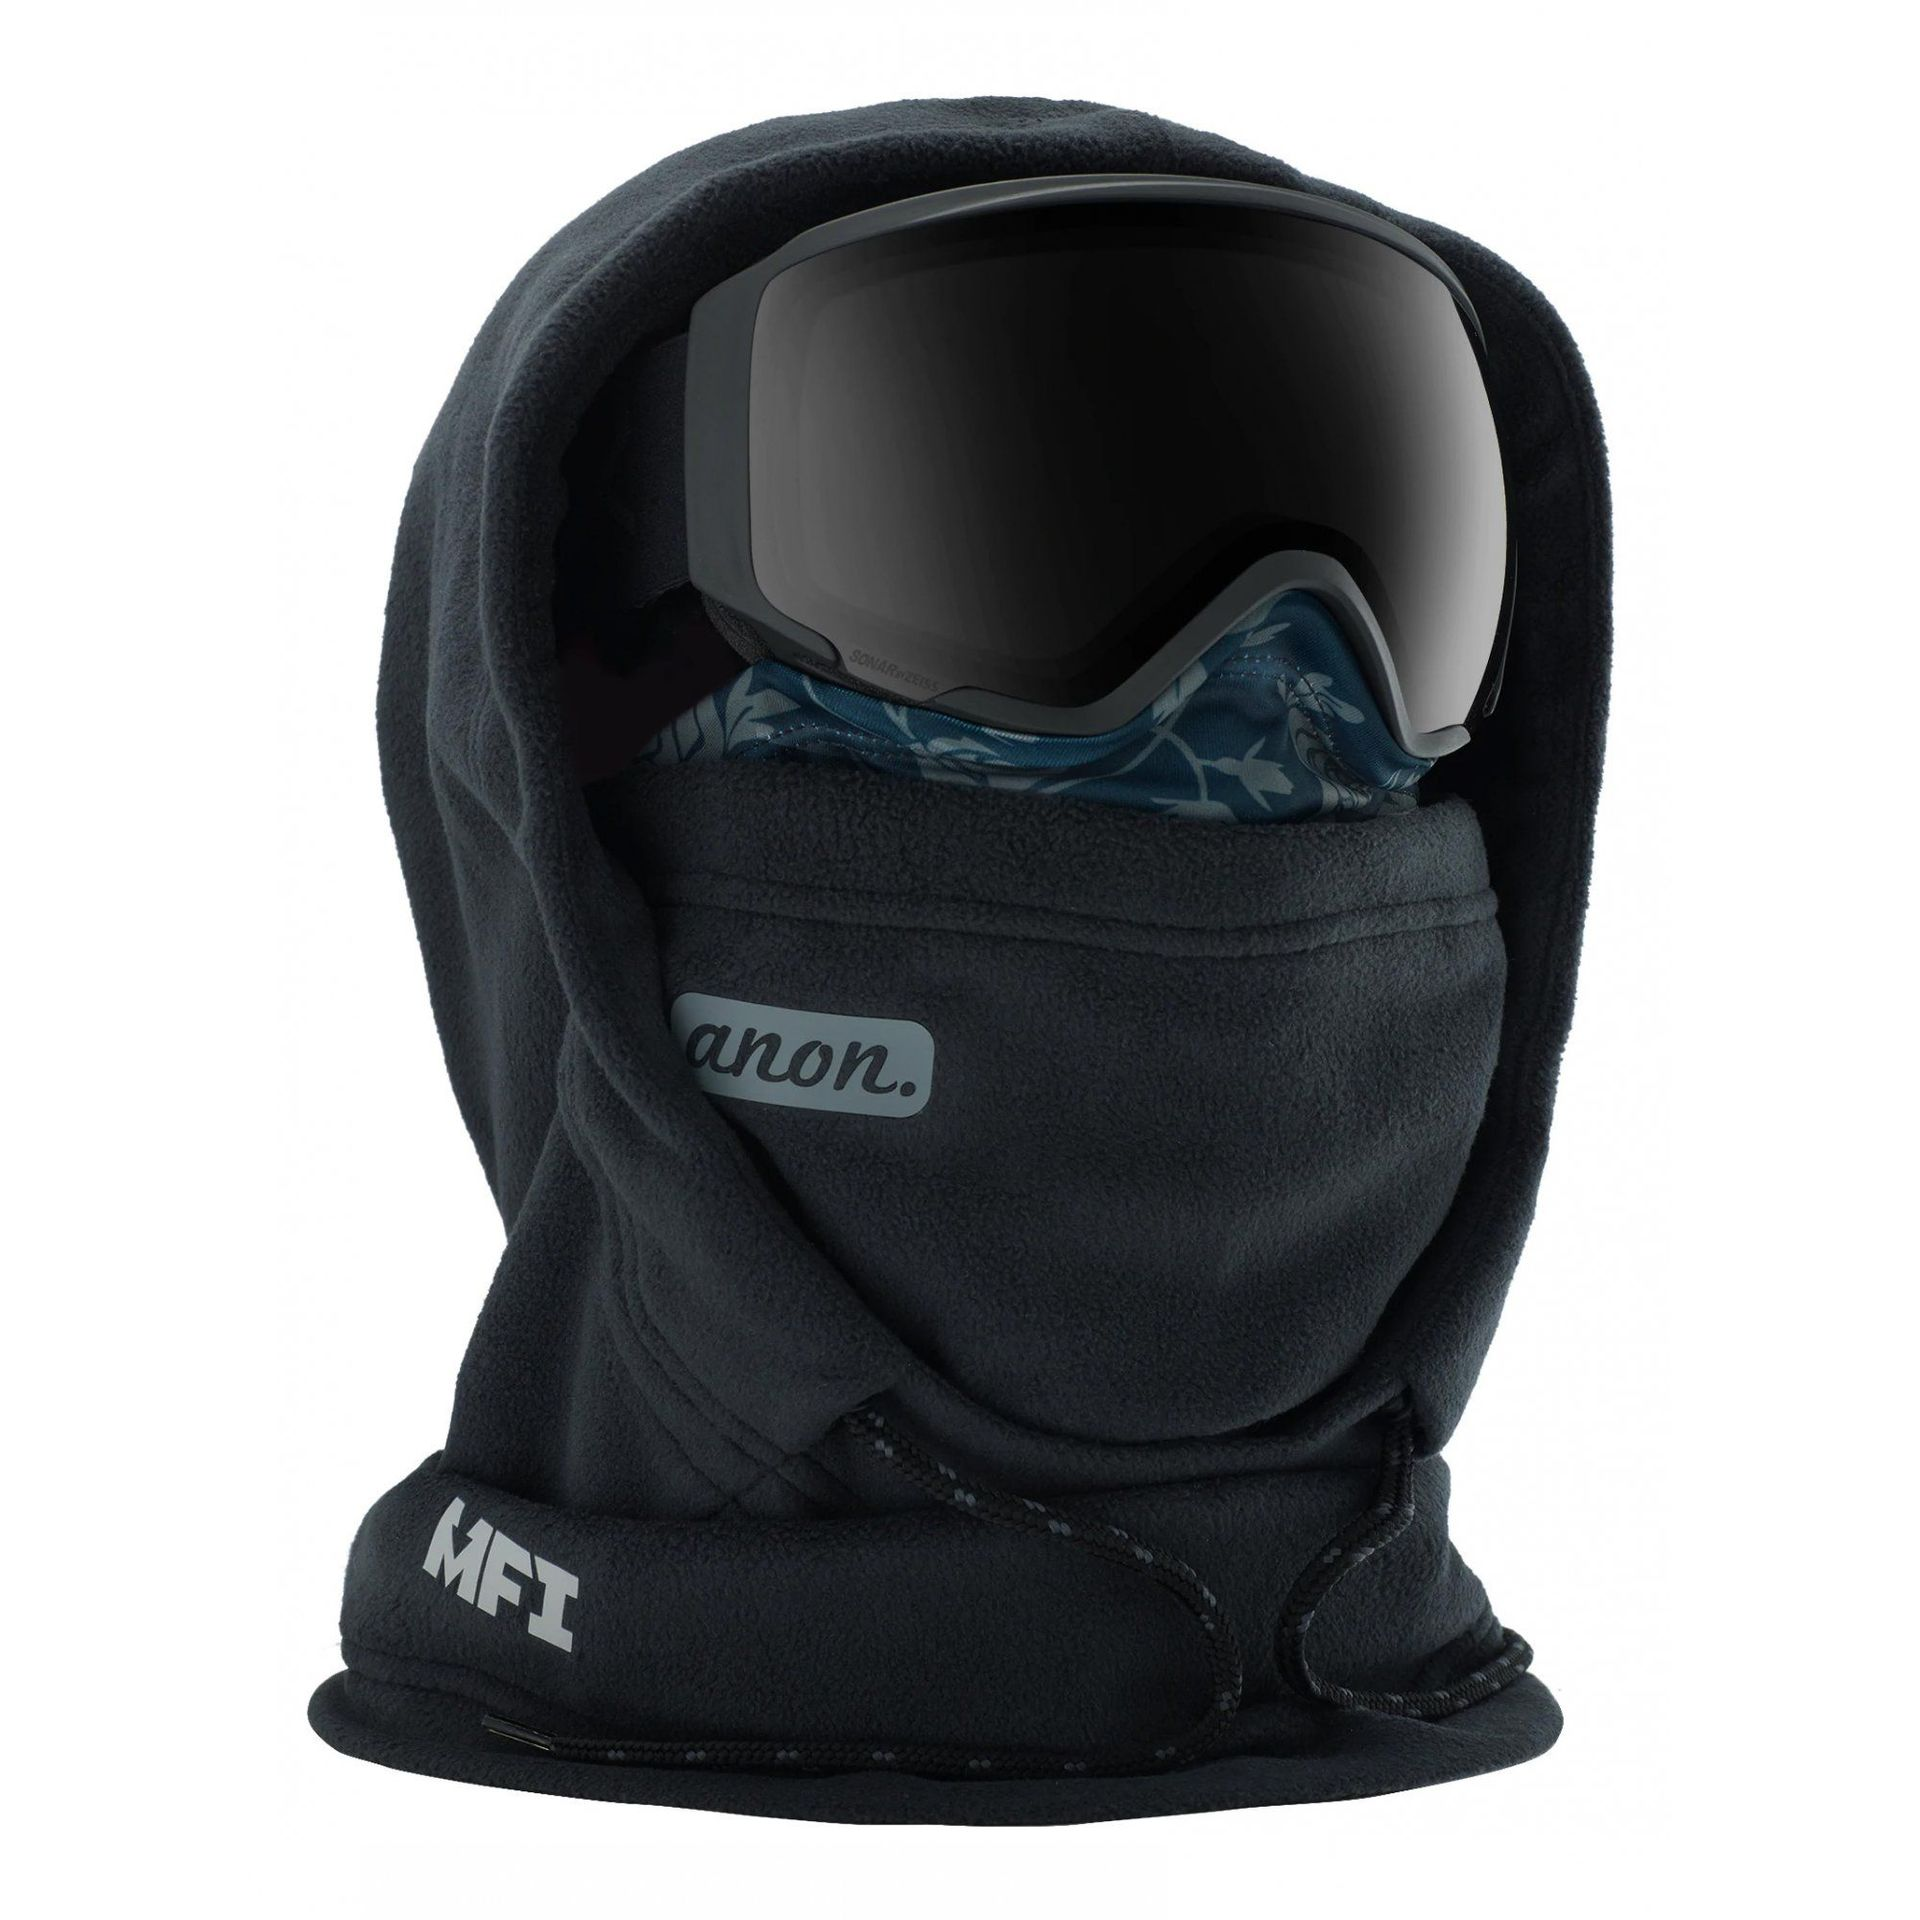 KOMIN ANON W MFI FLEECE HELMET HOOD 185231-001 BLACK